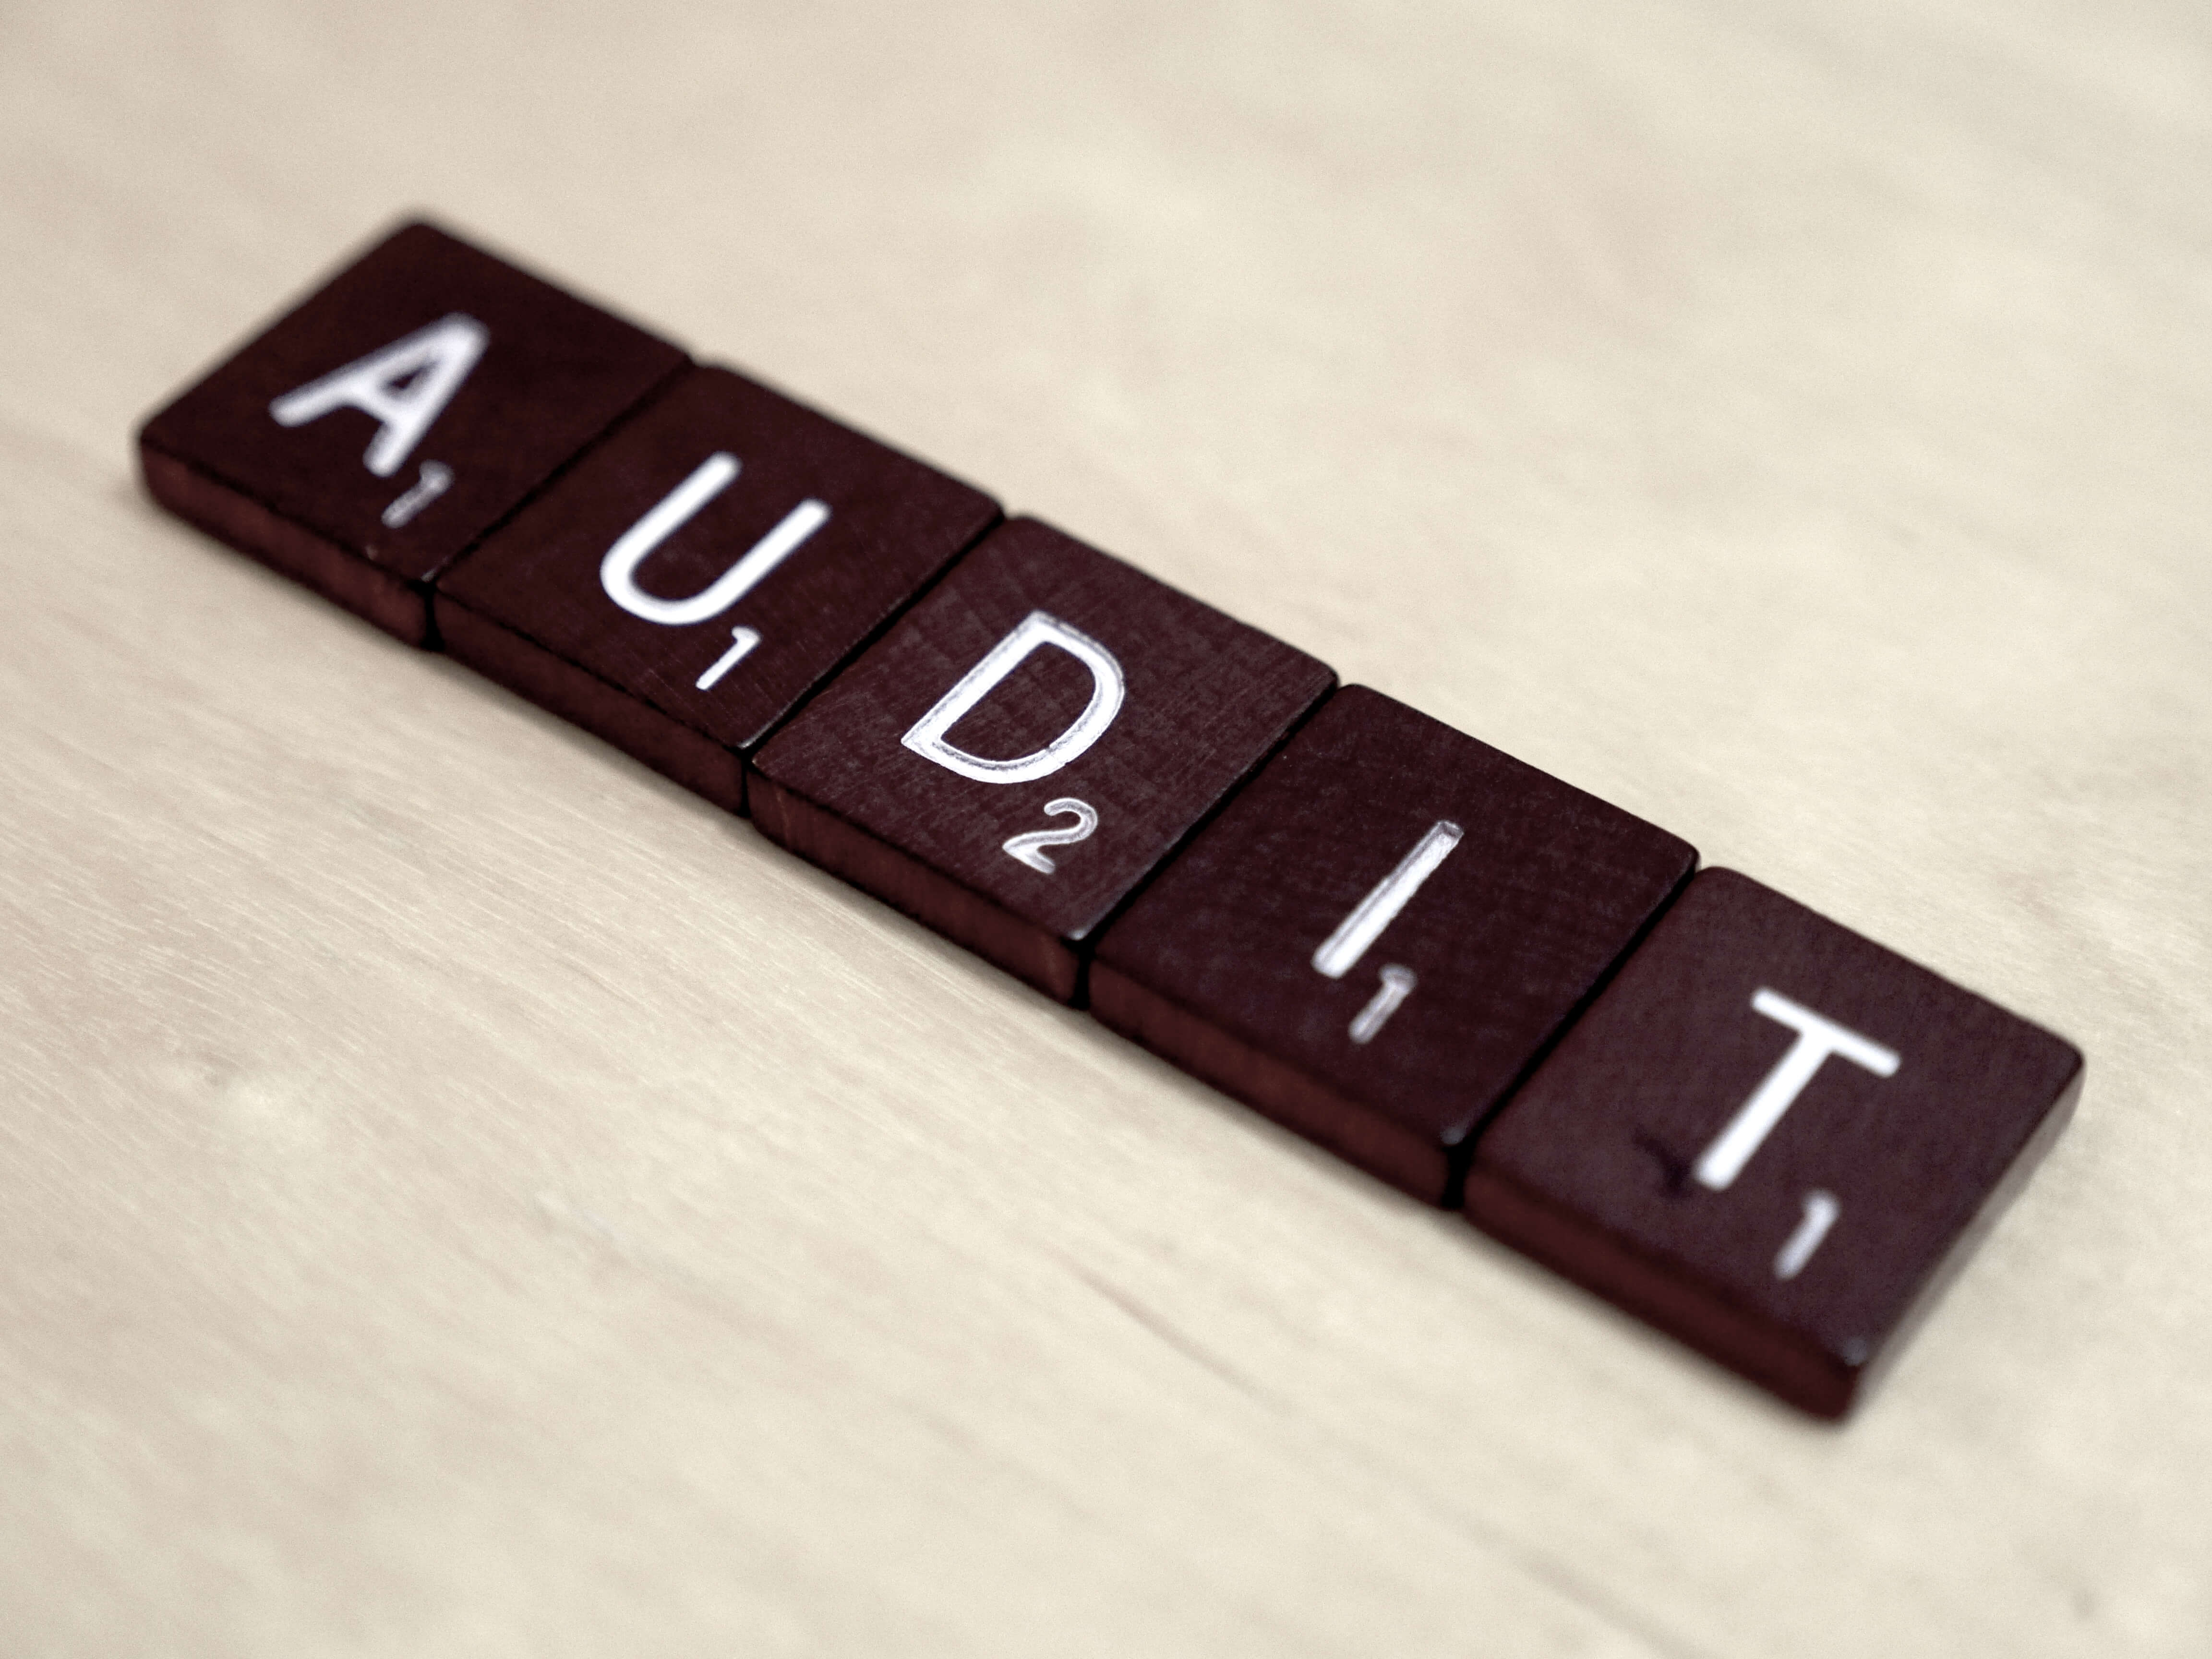 About Software Audits And Software Asset Management